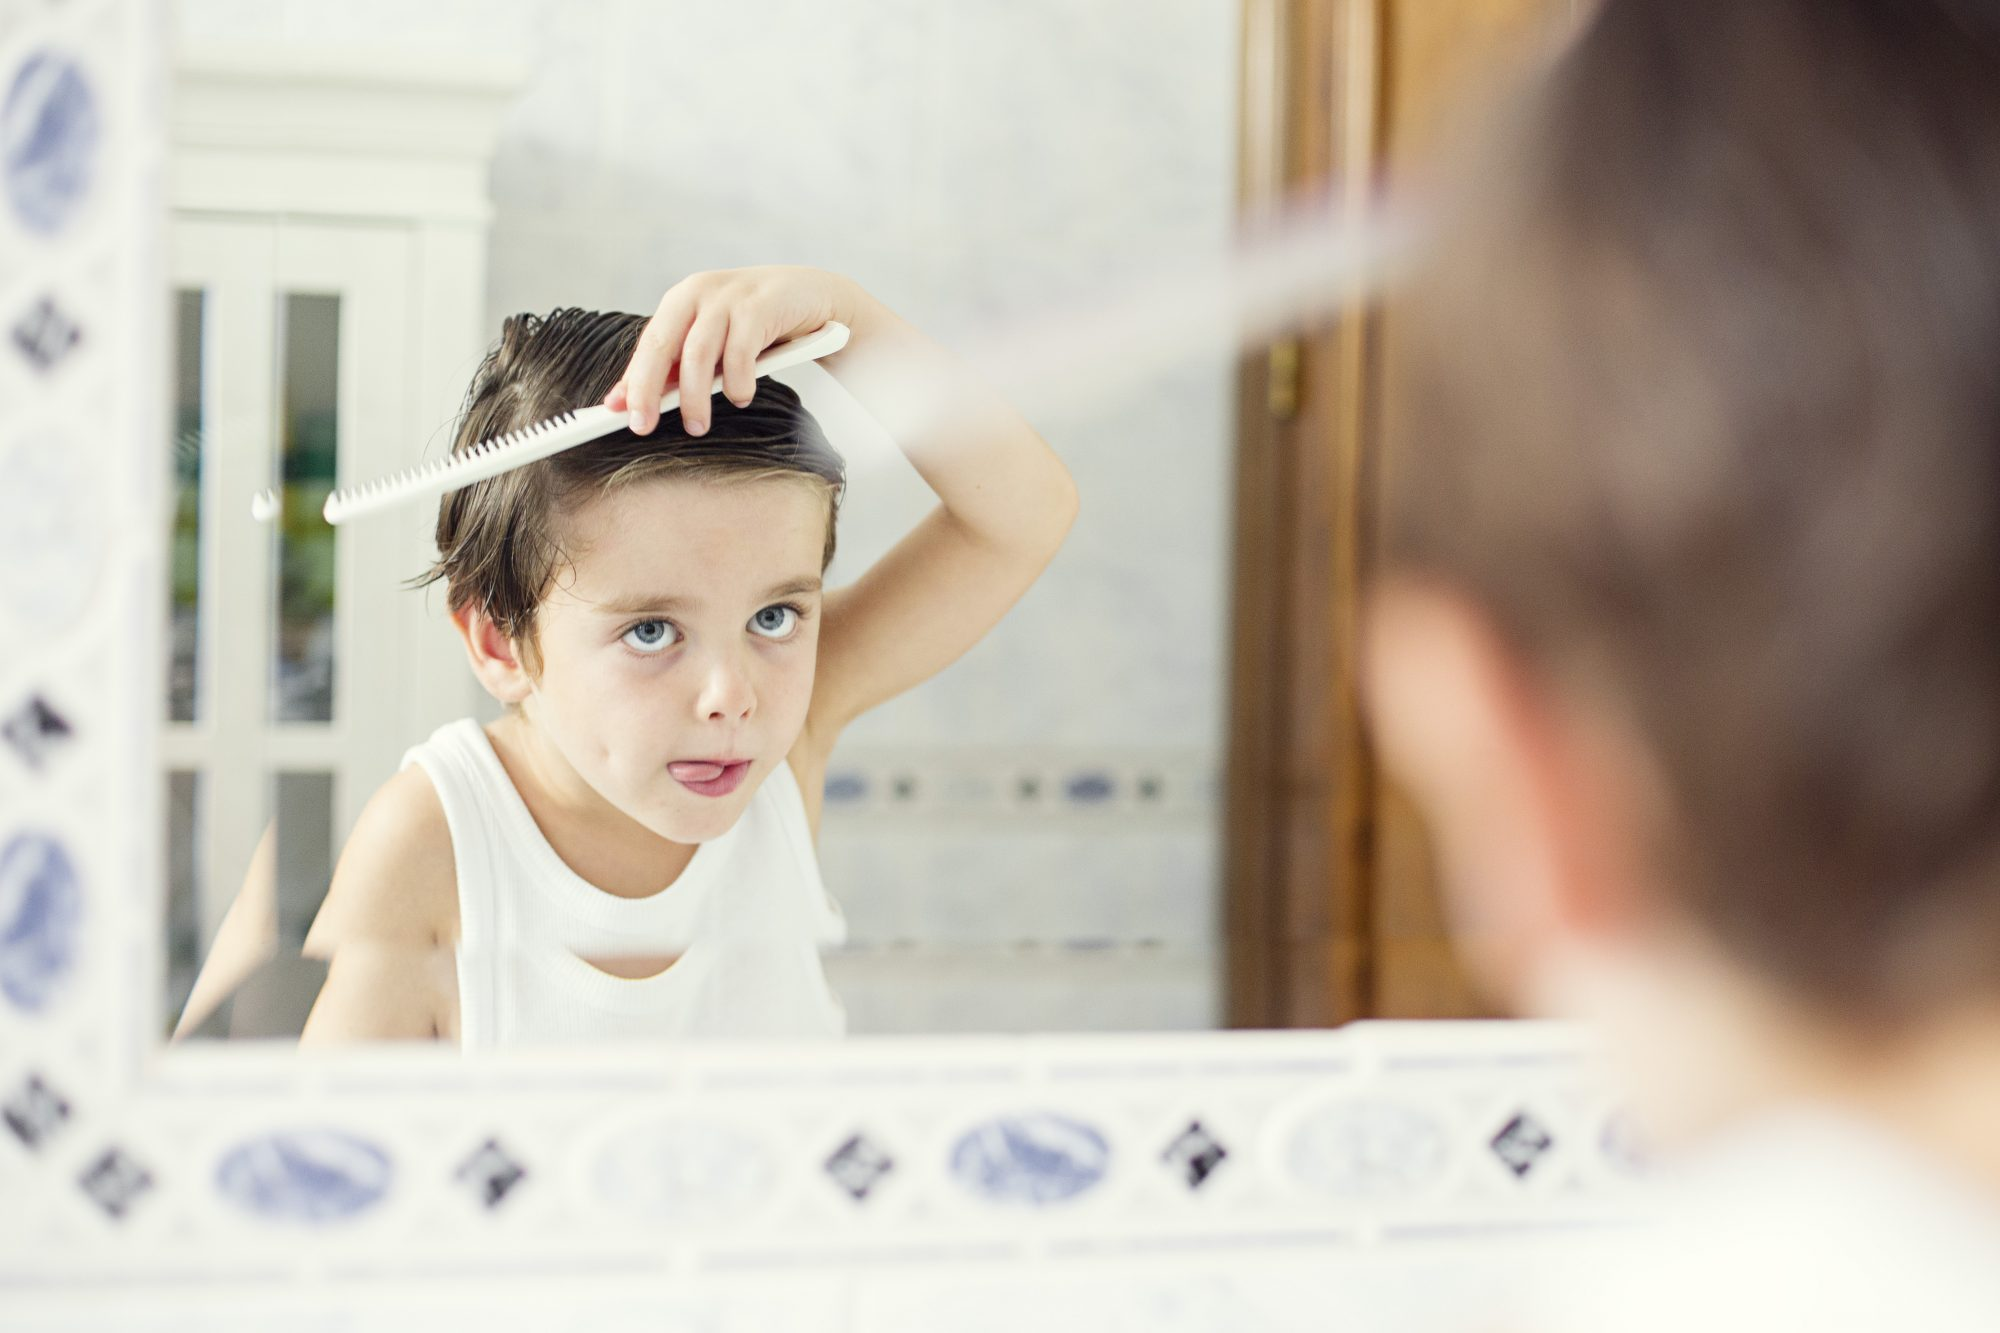 Myth: You won't get lice if you have short hair